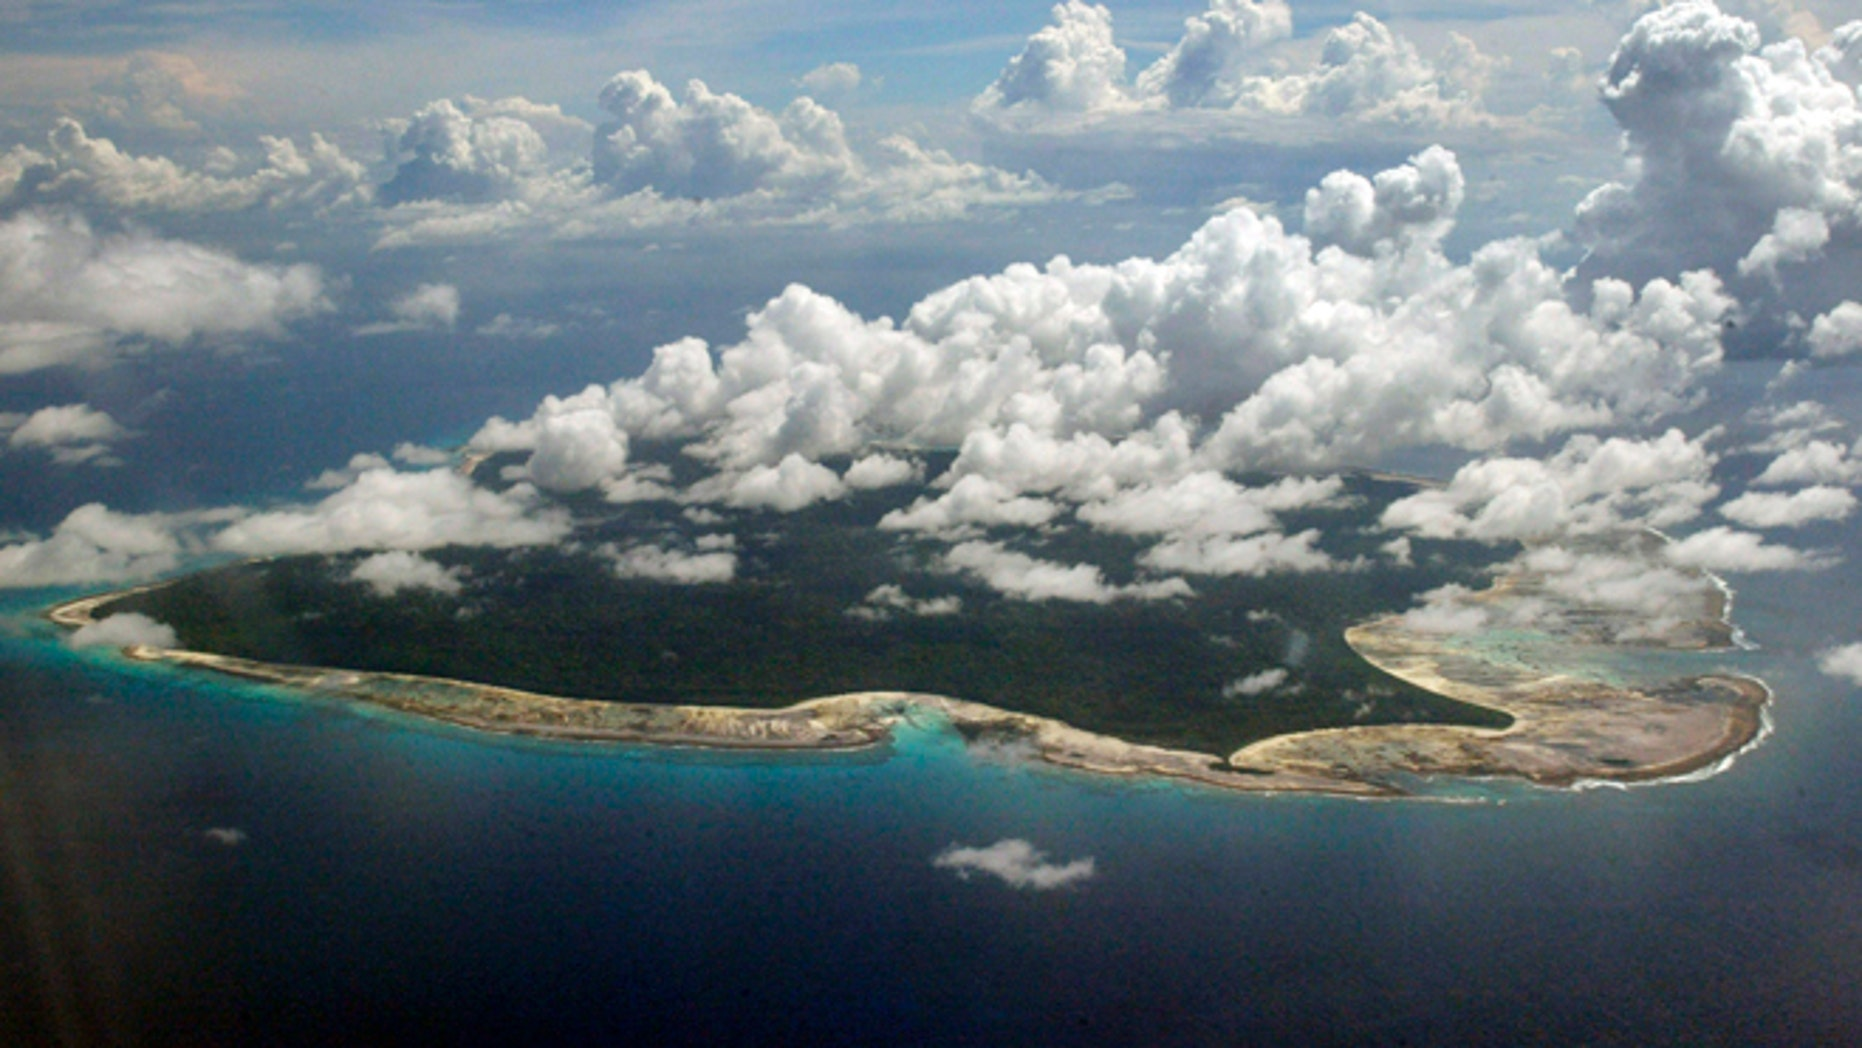 Clouds hang over the North Sentinel Island, in India's southeastern Andaman and Nicobar Islands. India used heat sensors on flights over hundreds of uninhabited Andaman Sea islands Friday, March 14, 2014, and will expand its search for the missing Malaysia Airlines jet farther west into the Bay of Bengal, officials said. The Indian-controlled archipelago that stretches south of Myanmar contains 572 islands covering an area of 720-by-52 kilometers. Only 37 are inhabited, with the rest covered in dense forests.